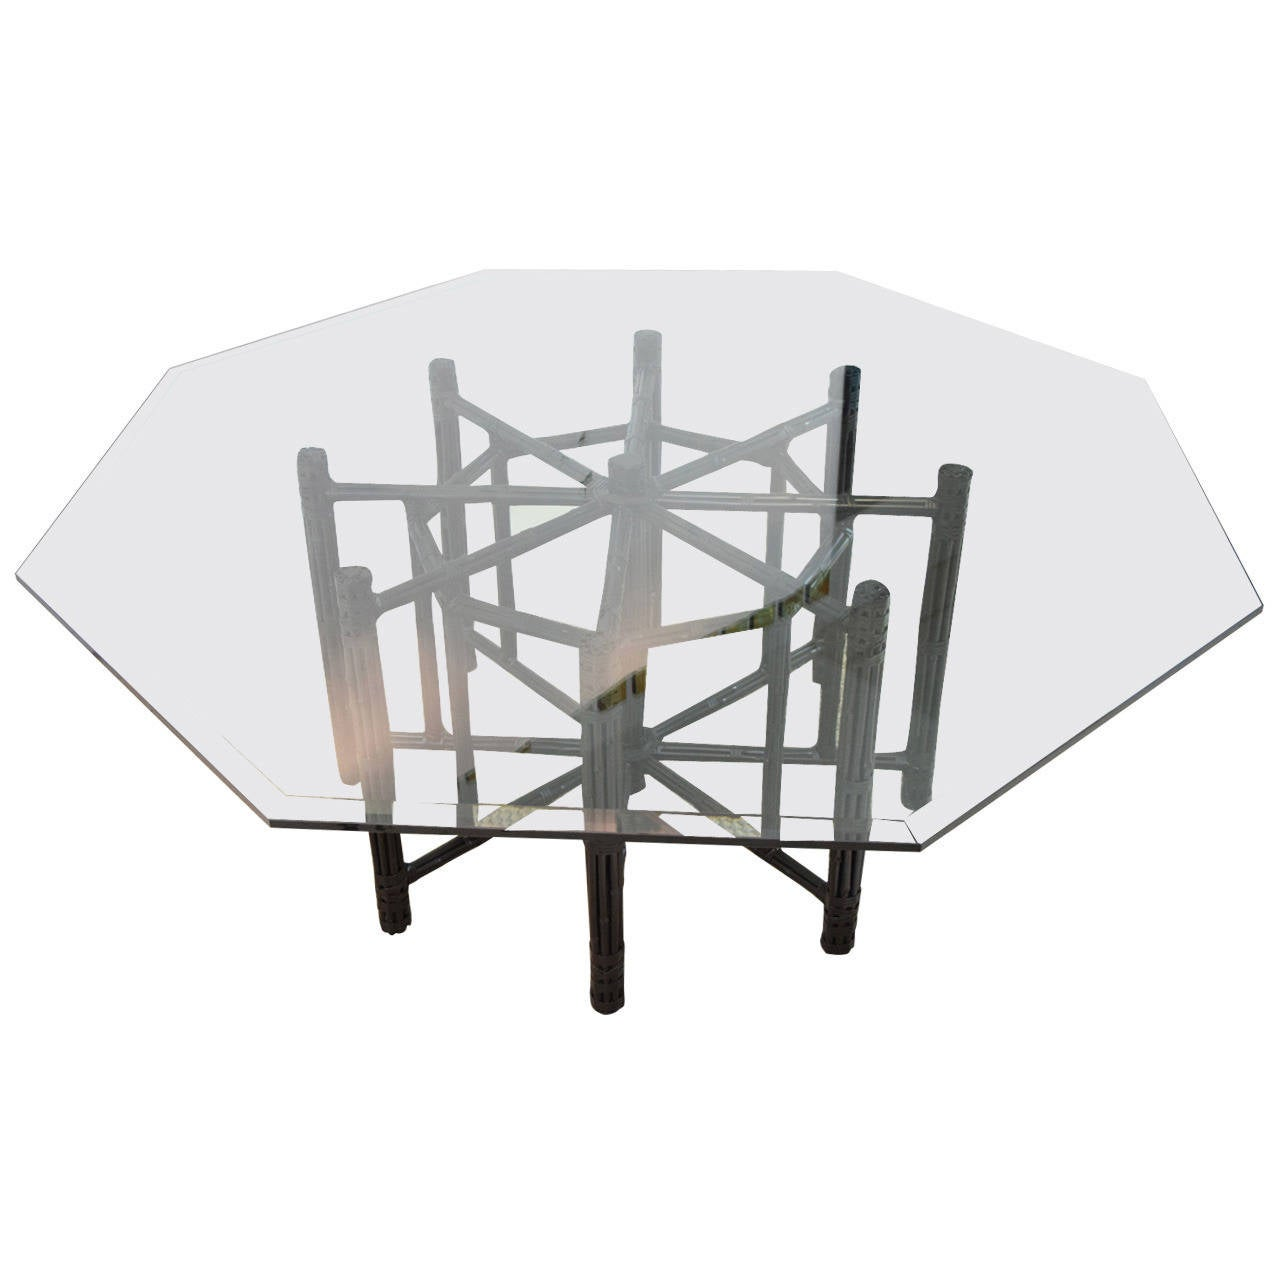 McGuire Bamboo Table With Octagon Glass Top 1